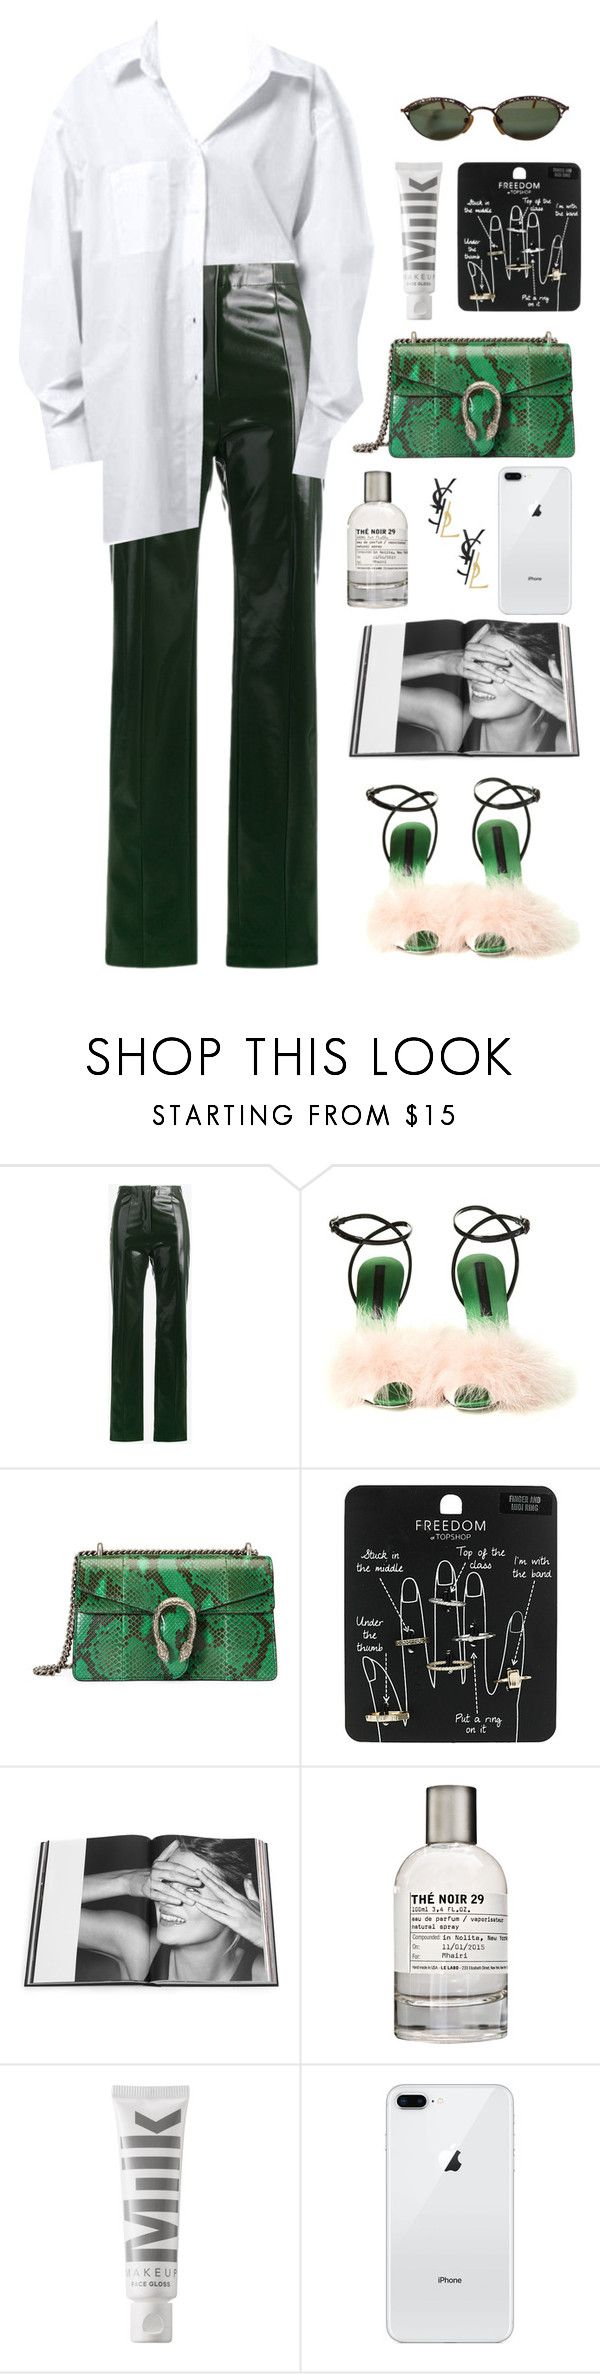 """the 19th"" by millicent4 ❤ liked on Polyvore featuring Acne Studios, Marco de Vincenzo, Gucci, Topshop, Rizzoli Publishing, Le Labo, MILK MAKEUP, Jean-Paul Gaultier and Yves Saint Laurent"